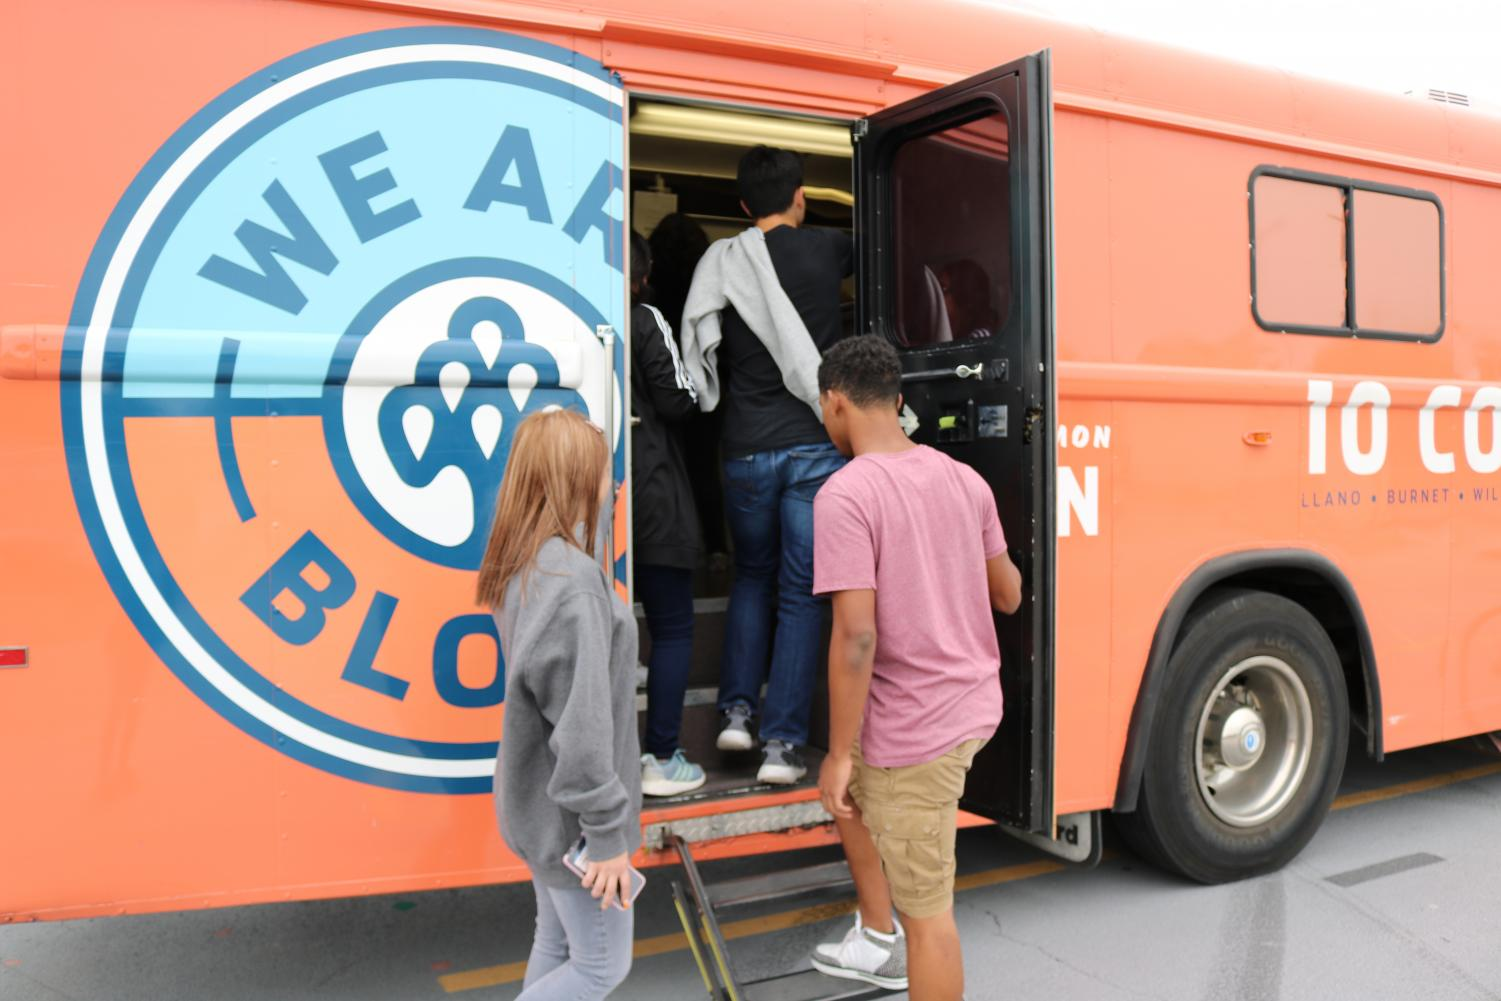 Students+eager+to+donate+blood+climb+into+the+crowded+bus+where+they+await+their+turn.